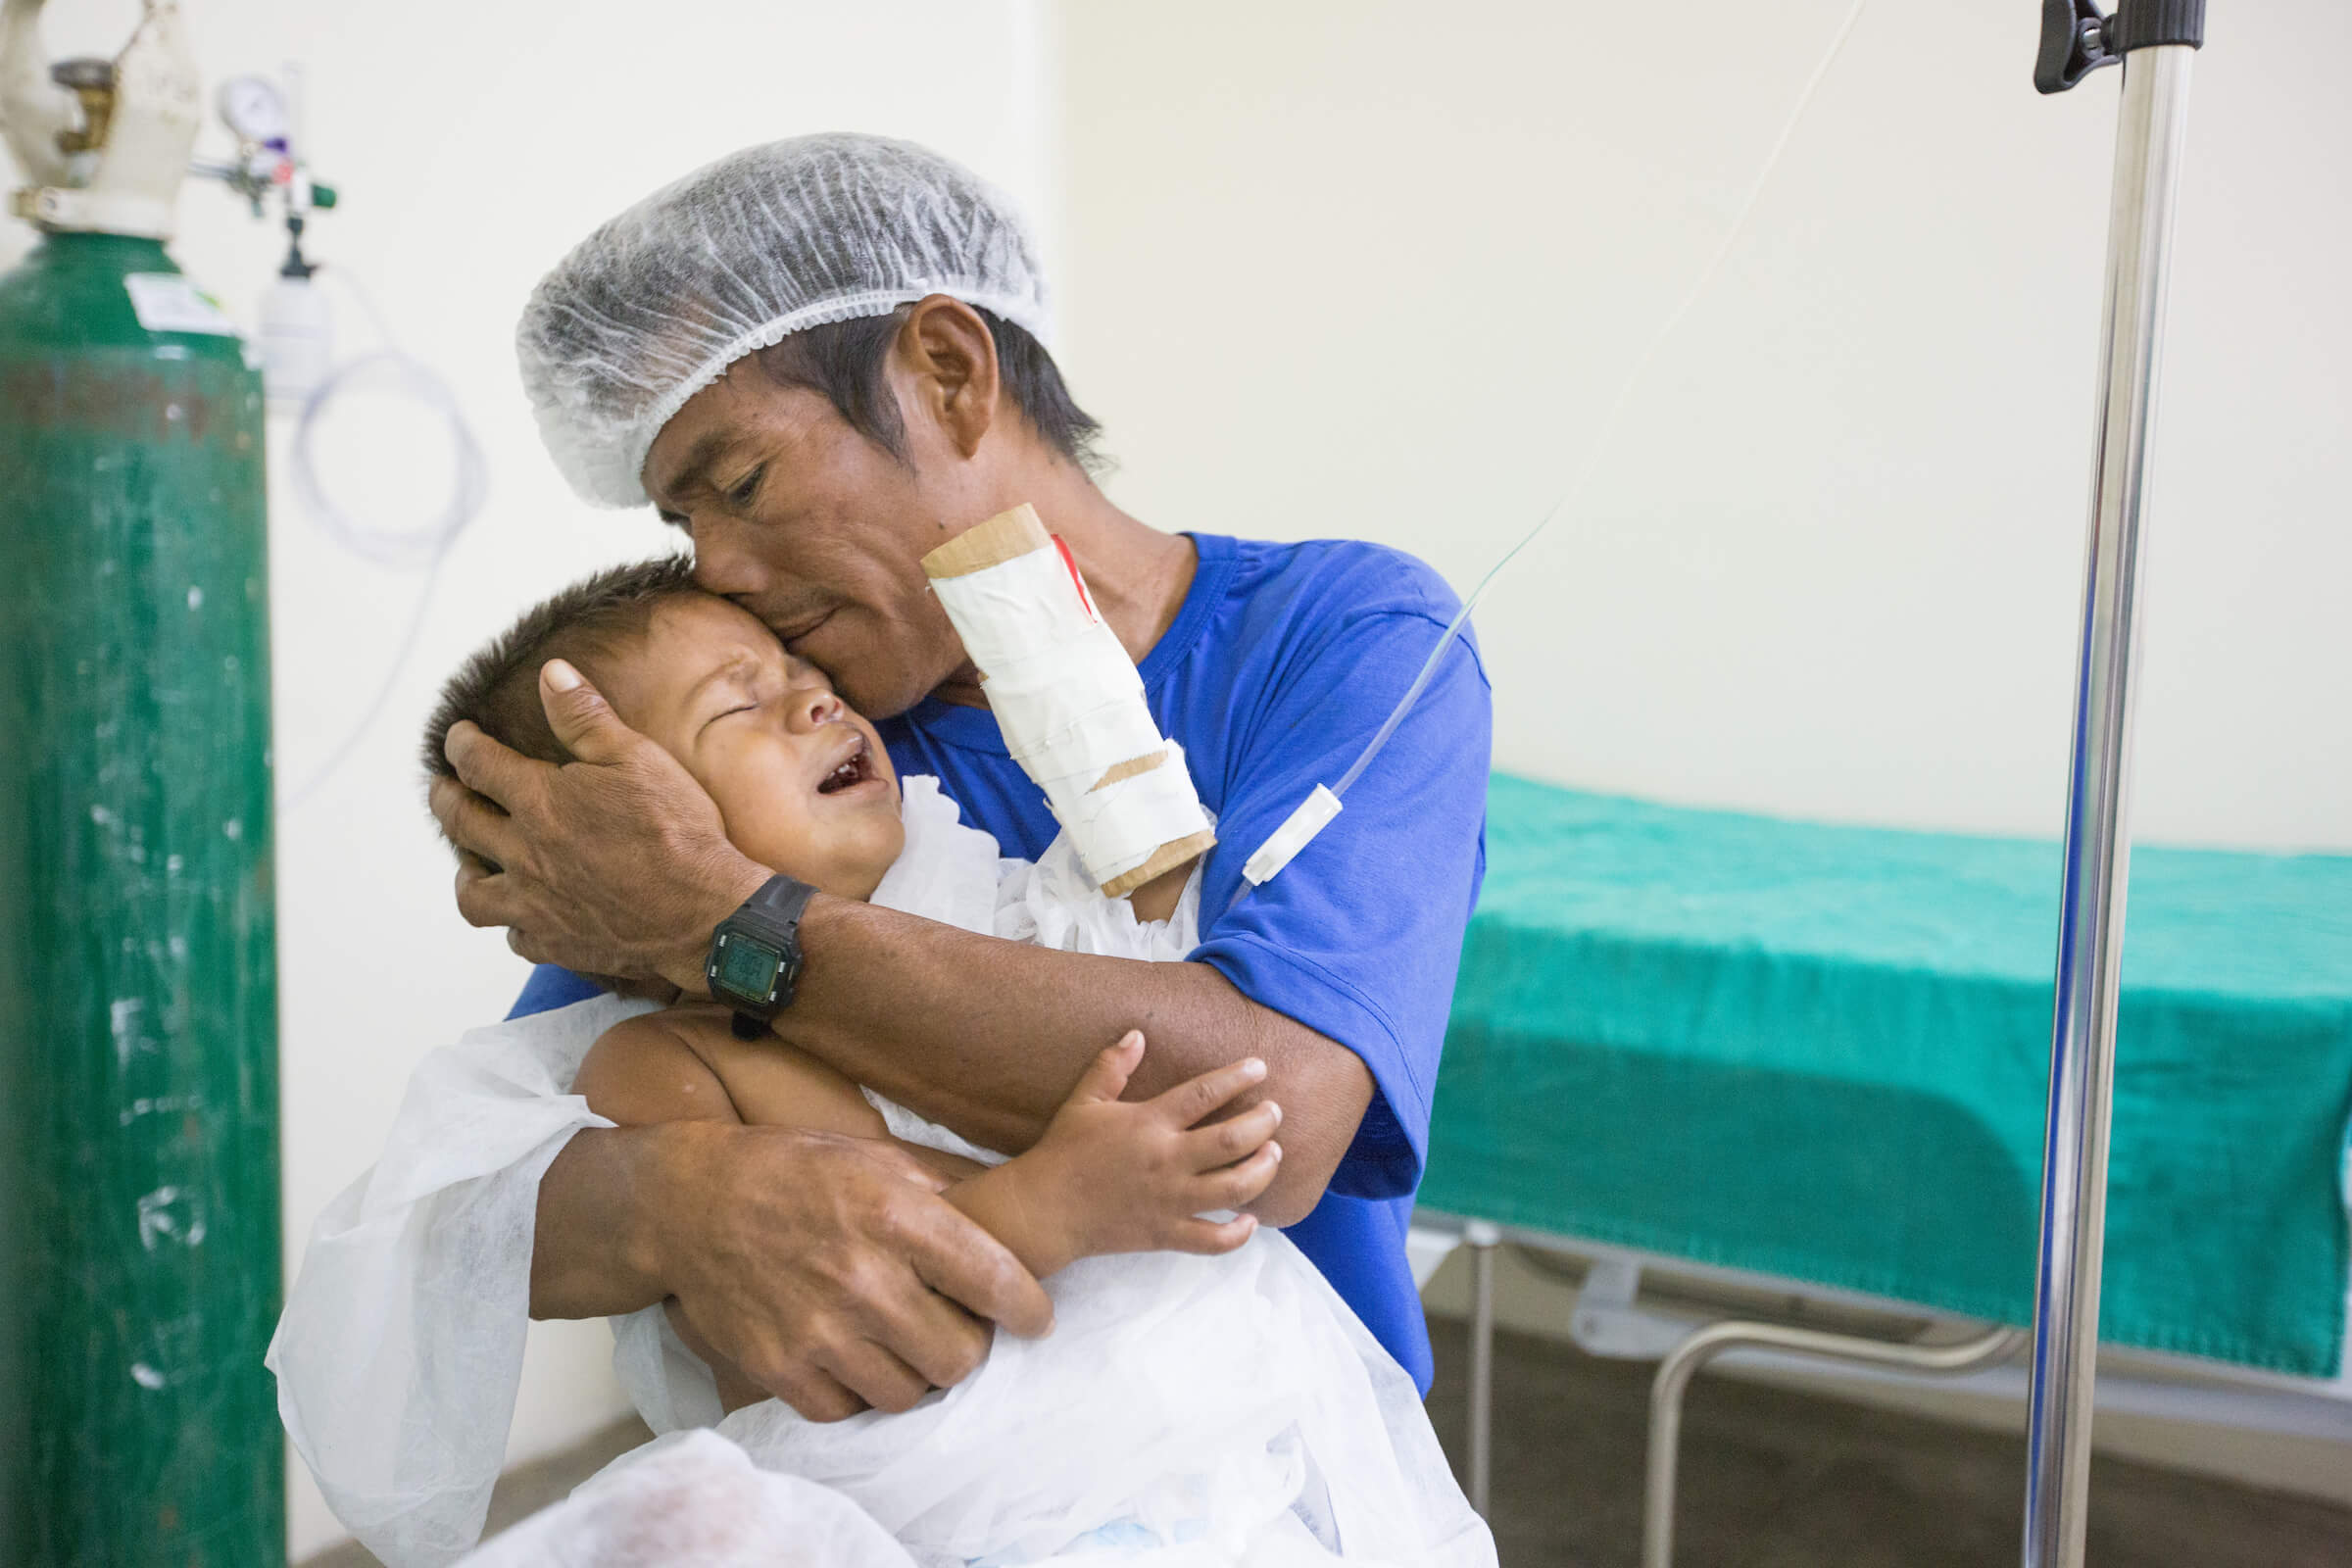 smile-train-benjamin-constant-brazil-amazon-family-relief-cleft-surgery-img65047